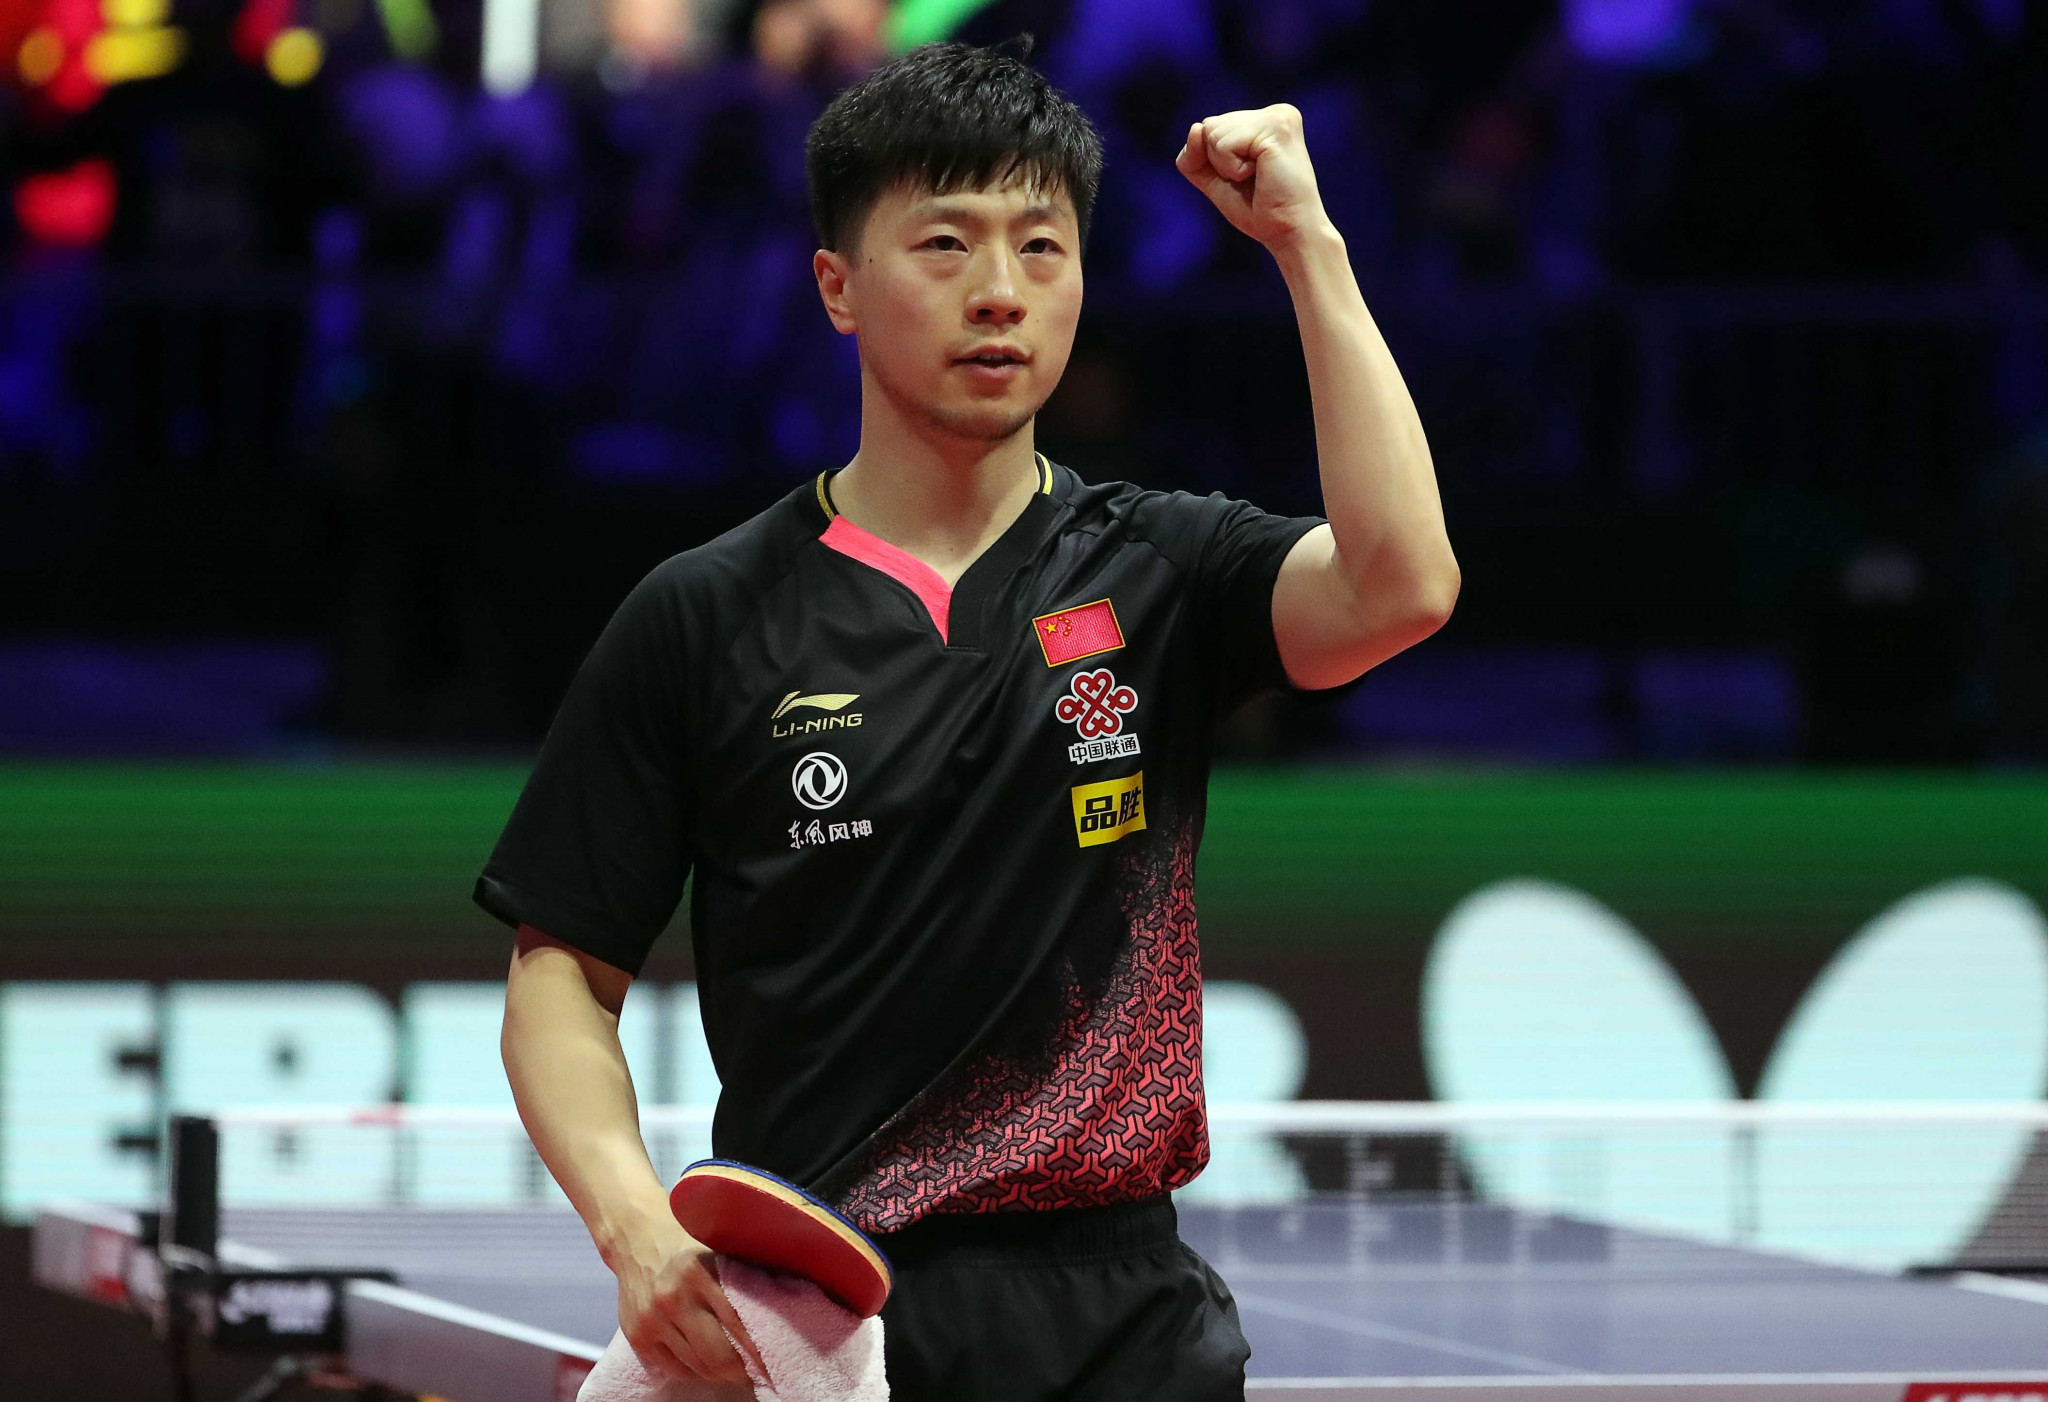 ITTF confirms November dates for World Table Tennis Championships in Houston